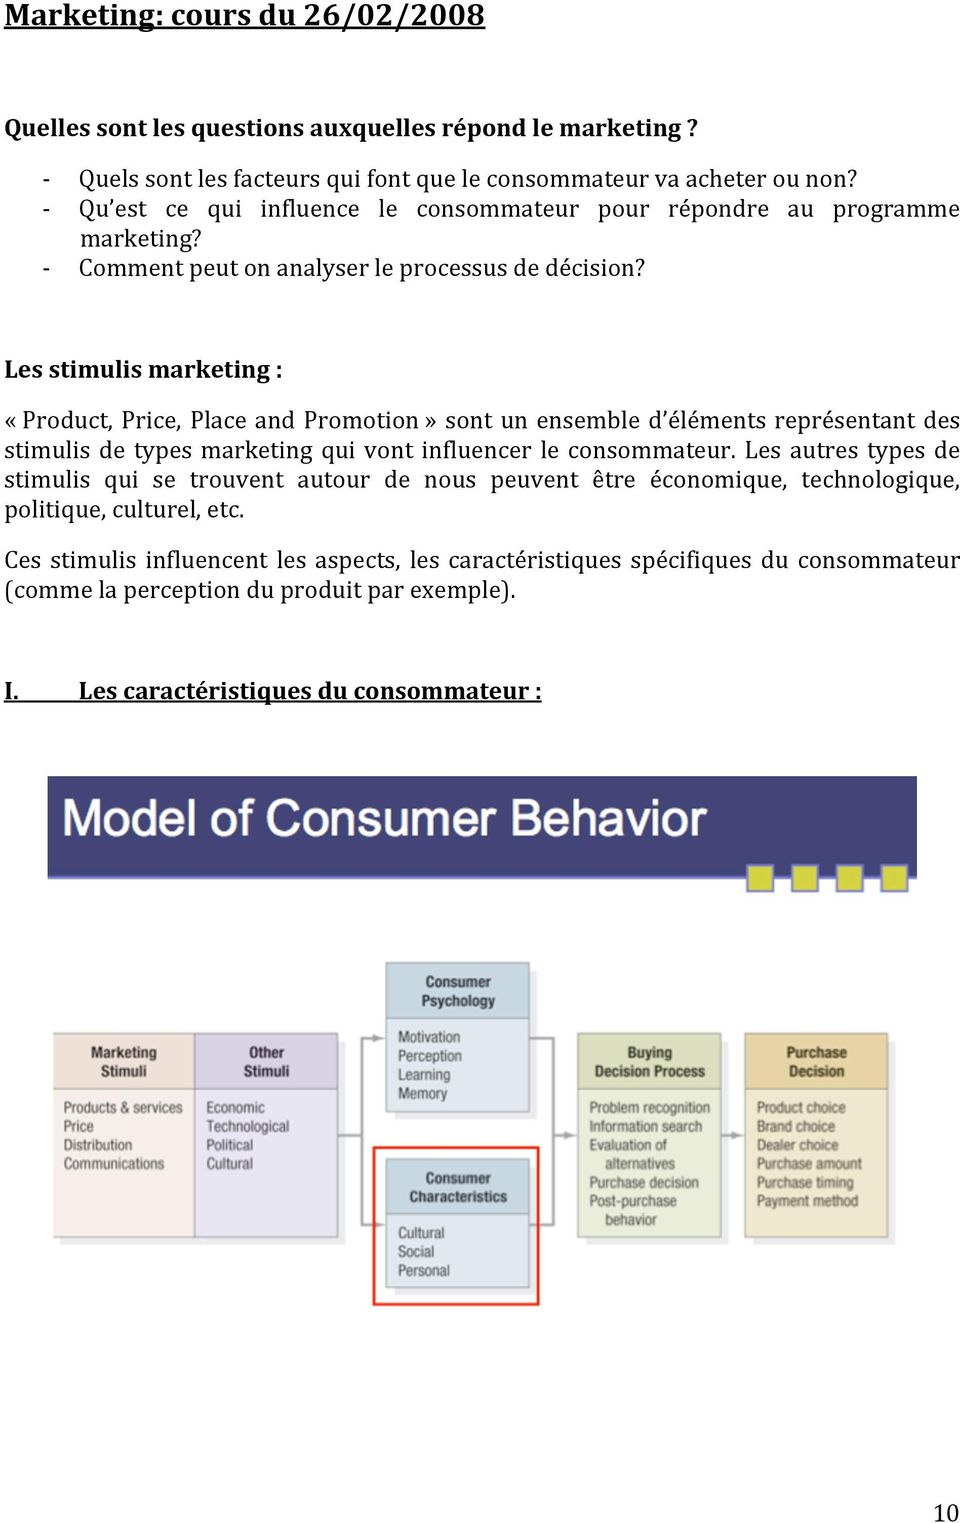 Lesstimulismarketing: «Product,Price,PlaceandPromotion»sontunensembled élémentsreprésentantdes stimulis de types marketing qui vont influencer le consommateur.